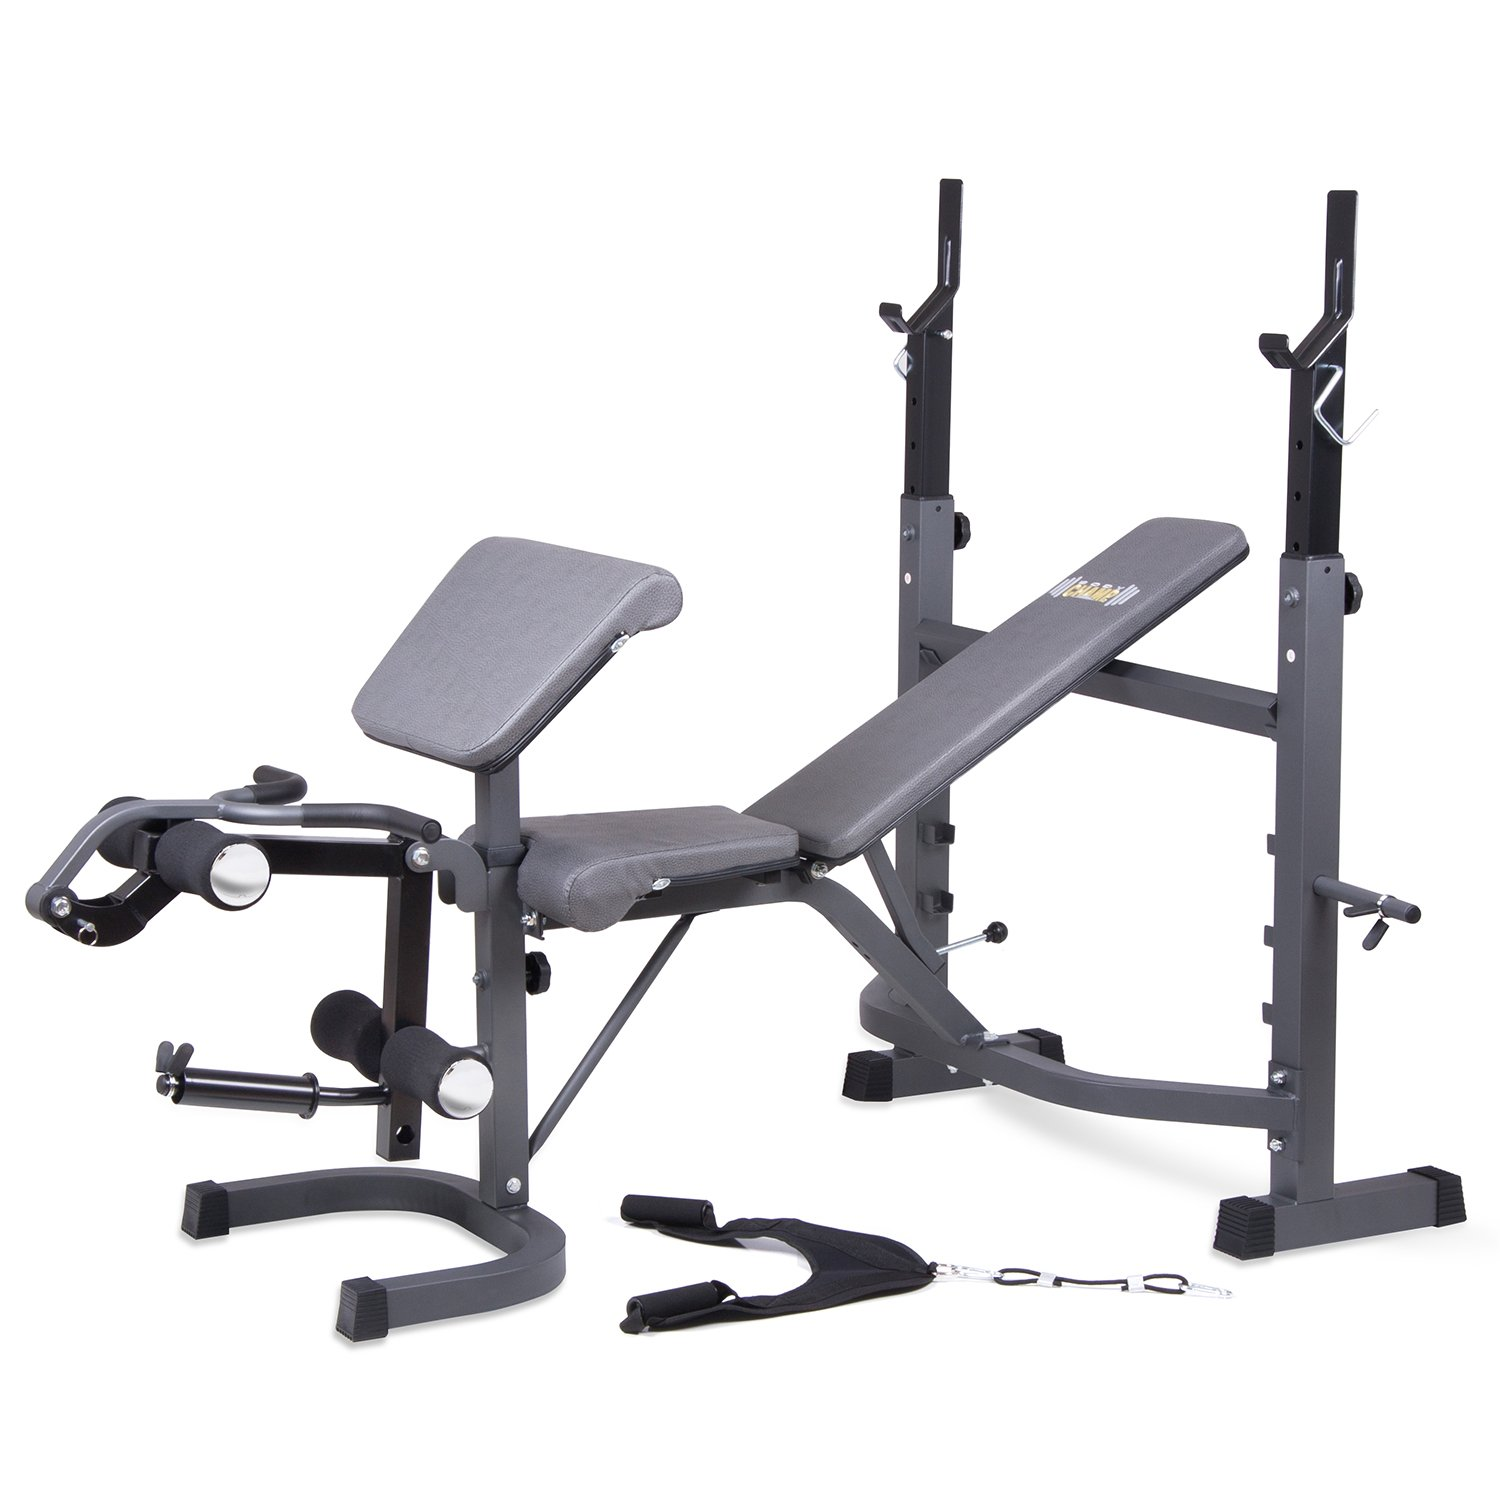 Body Champ BCB5860 Olympic Weight Bench with Preacher Curl, Leg Developer and Ab Crunch Handle / Home Gym Fitness by Body Champ